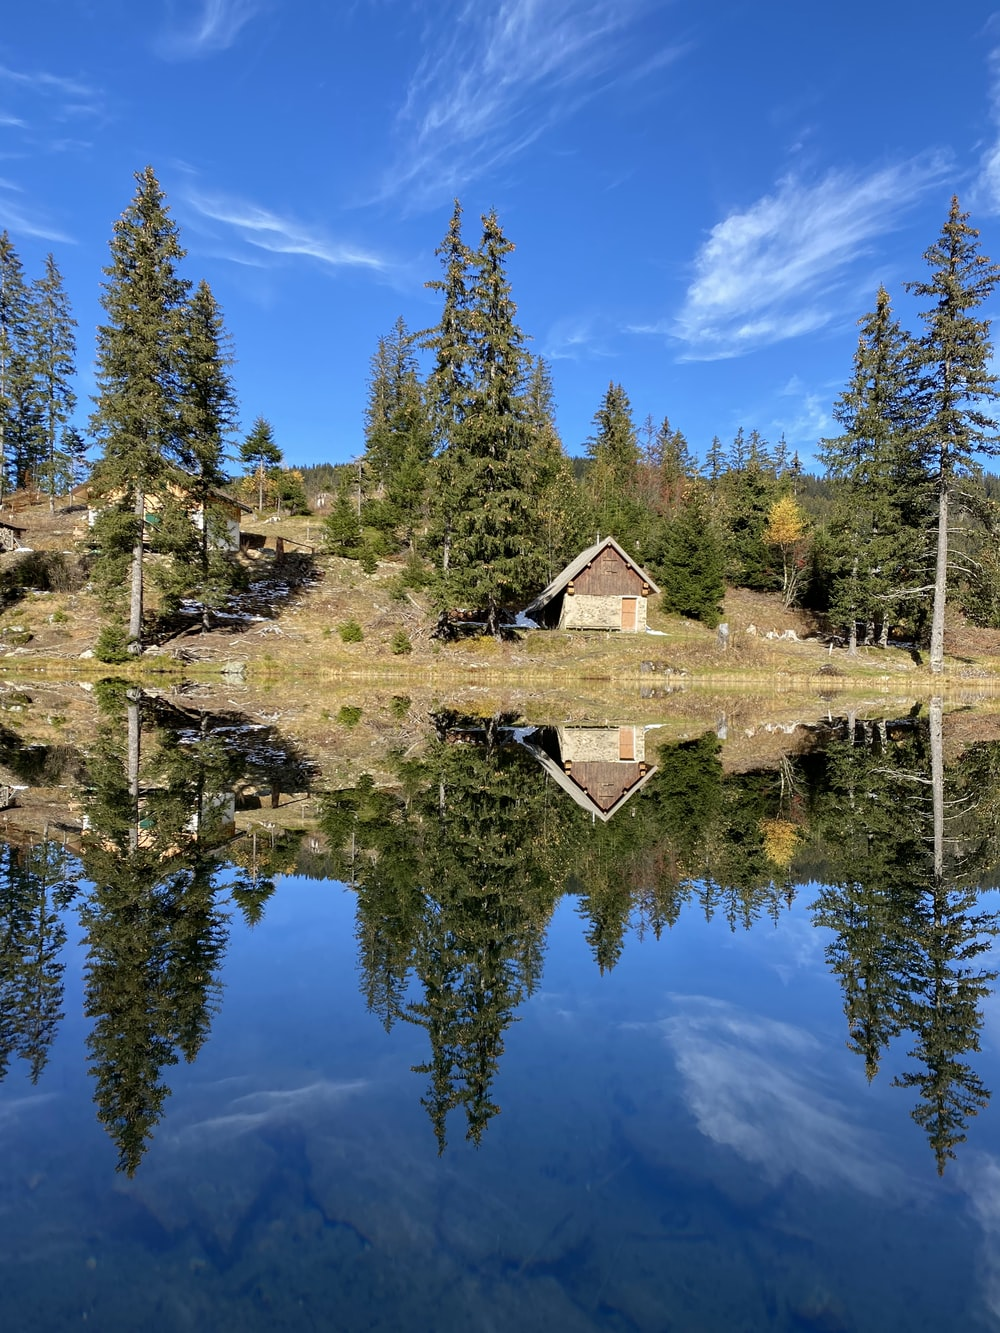 brown wooden house near green trees and lake under blue sky during daytime